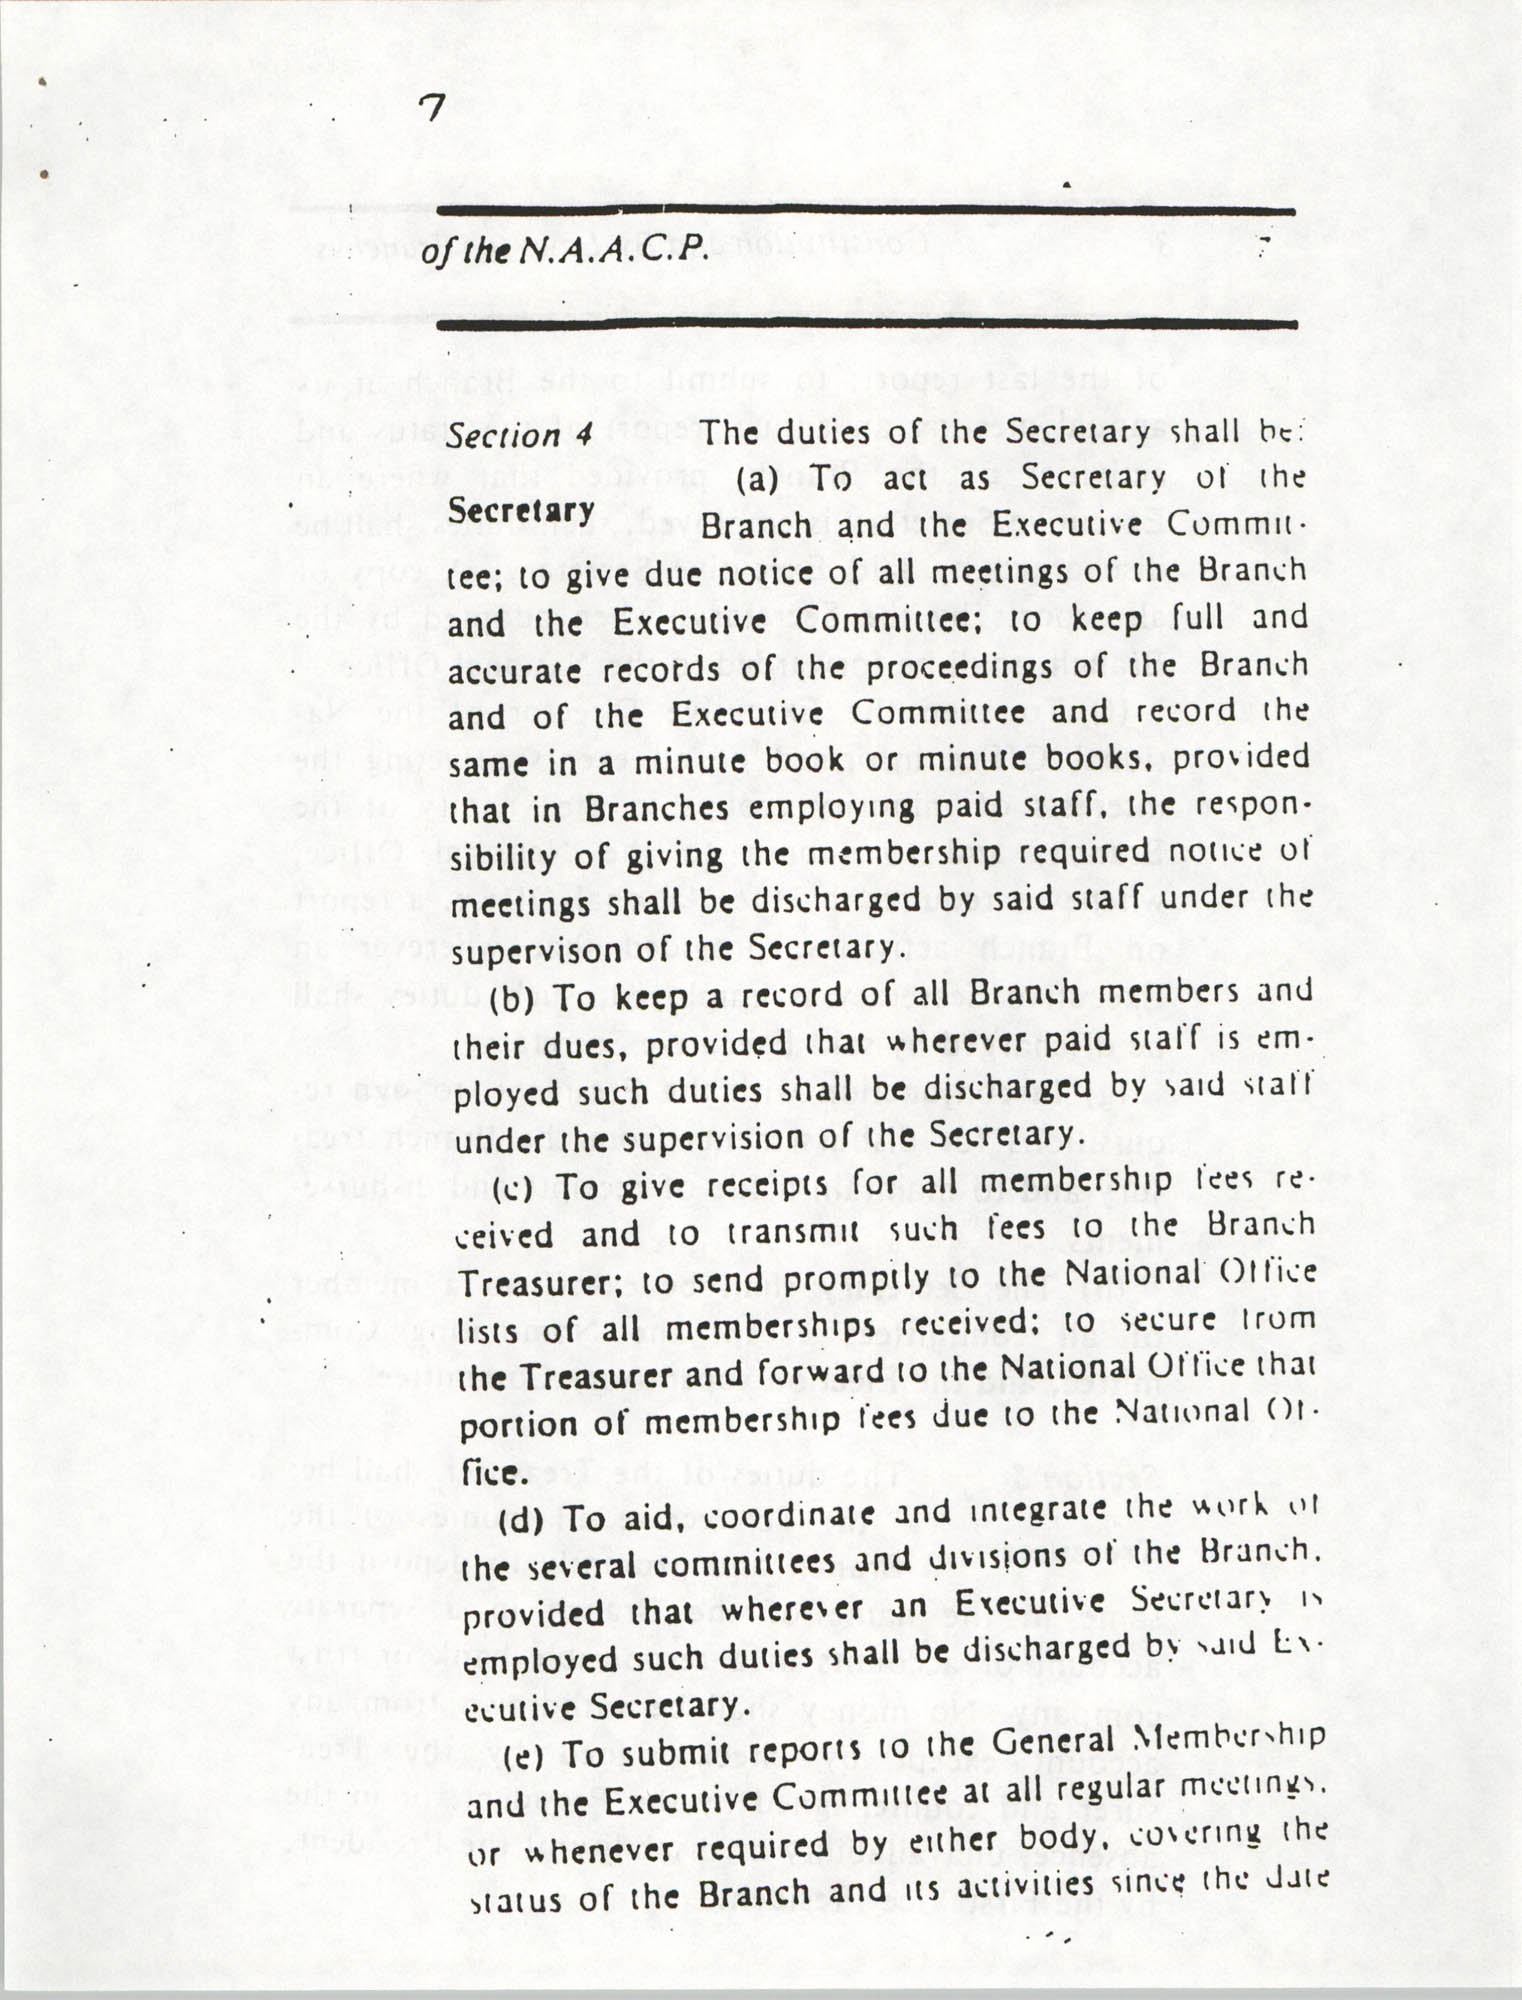 Constitution and By-Laws for Branches of the NAACP, March 1992, Page 7